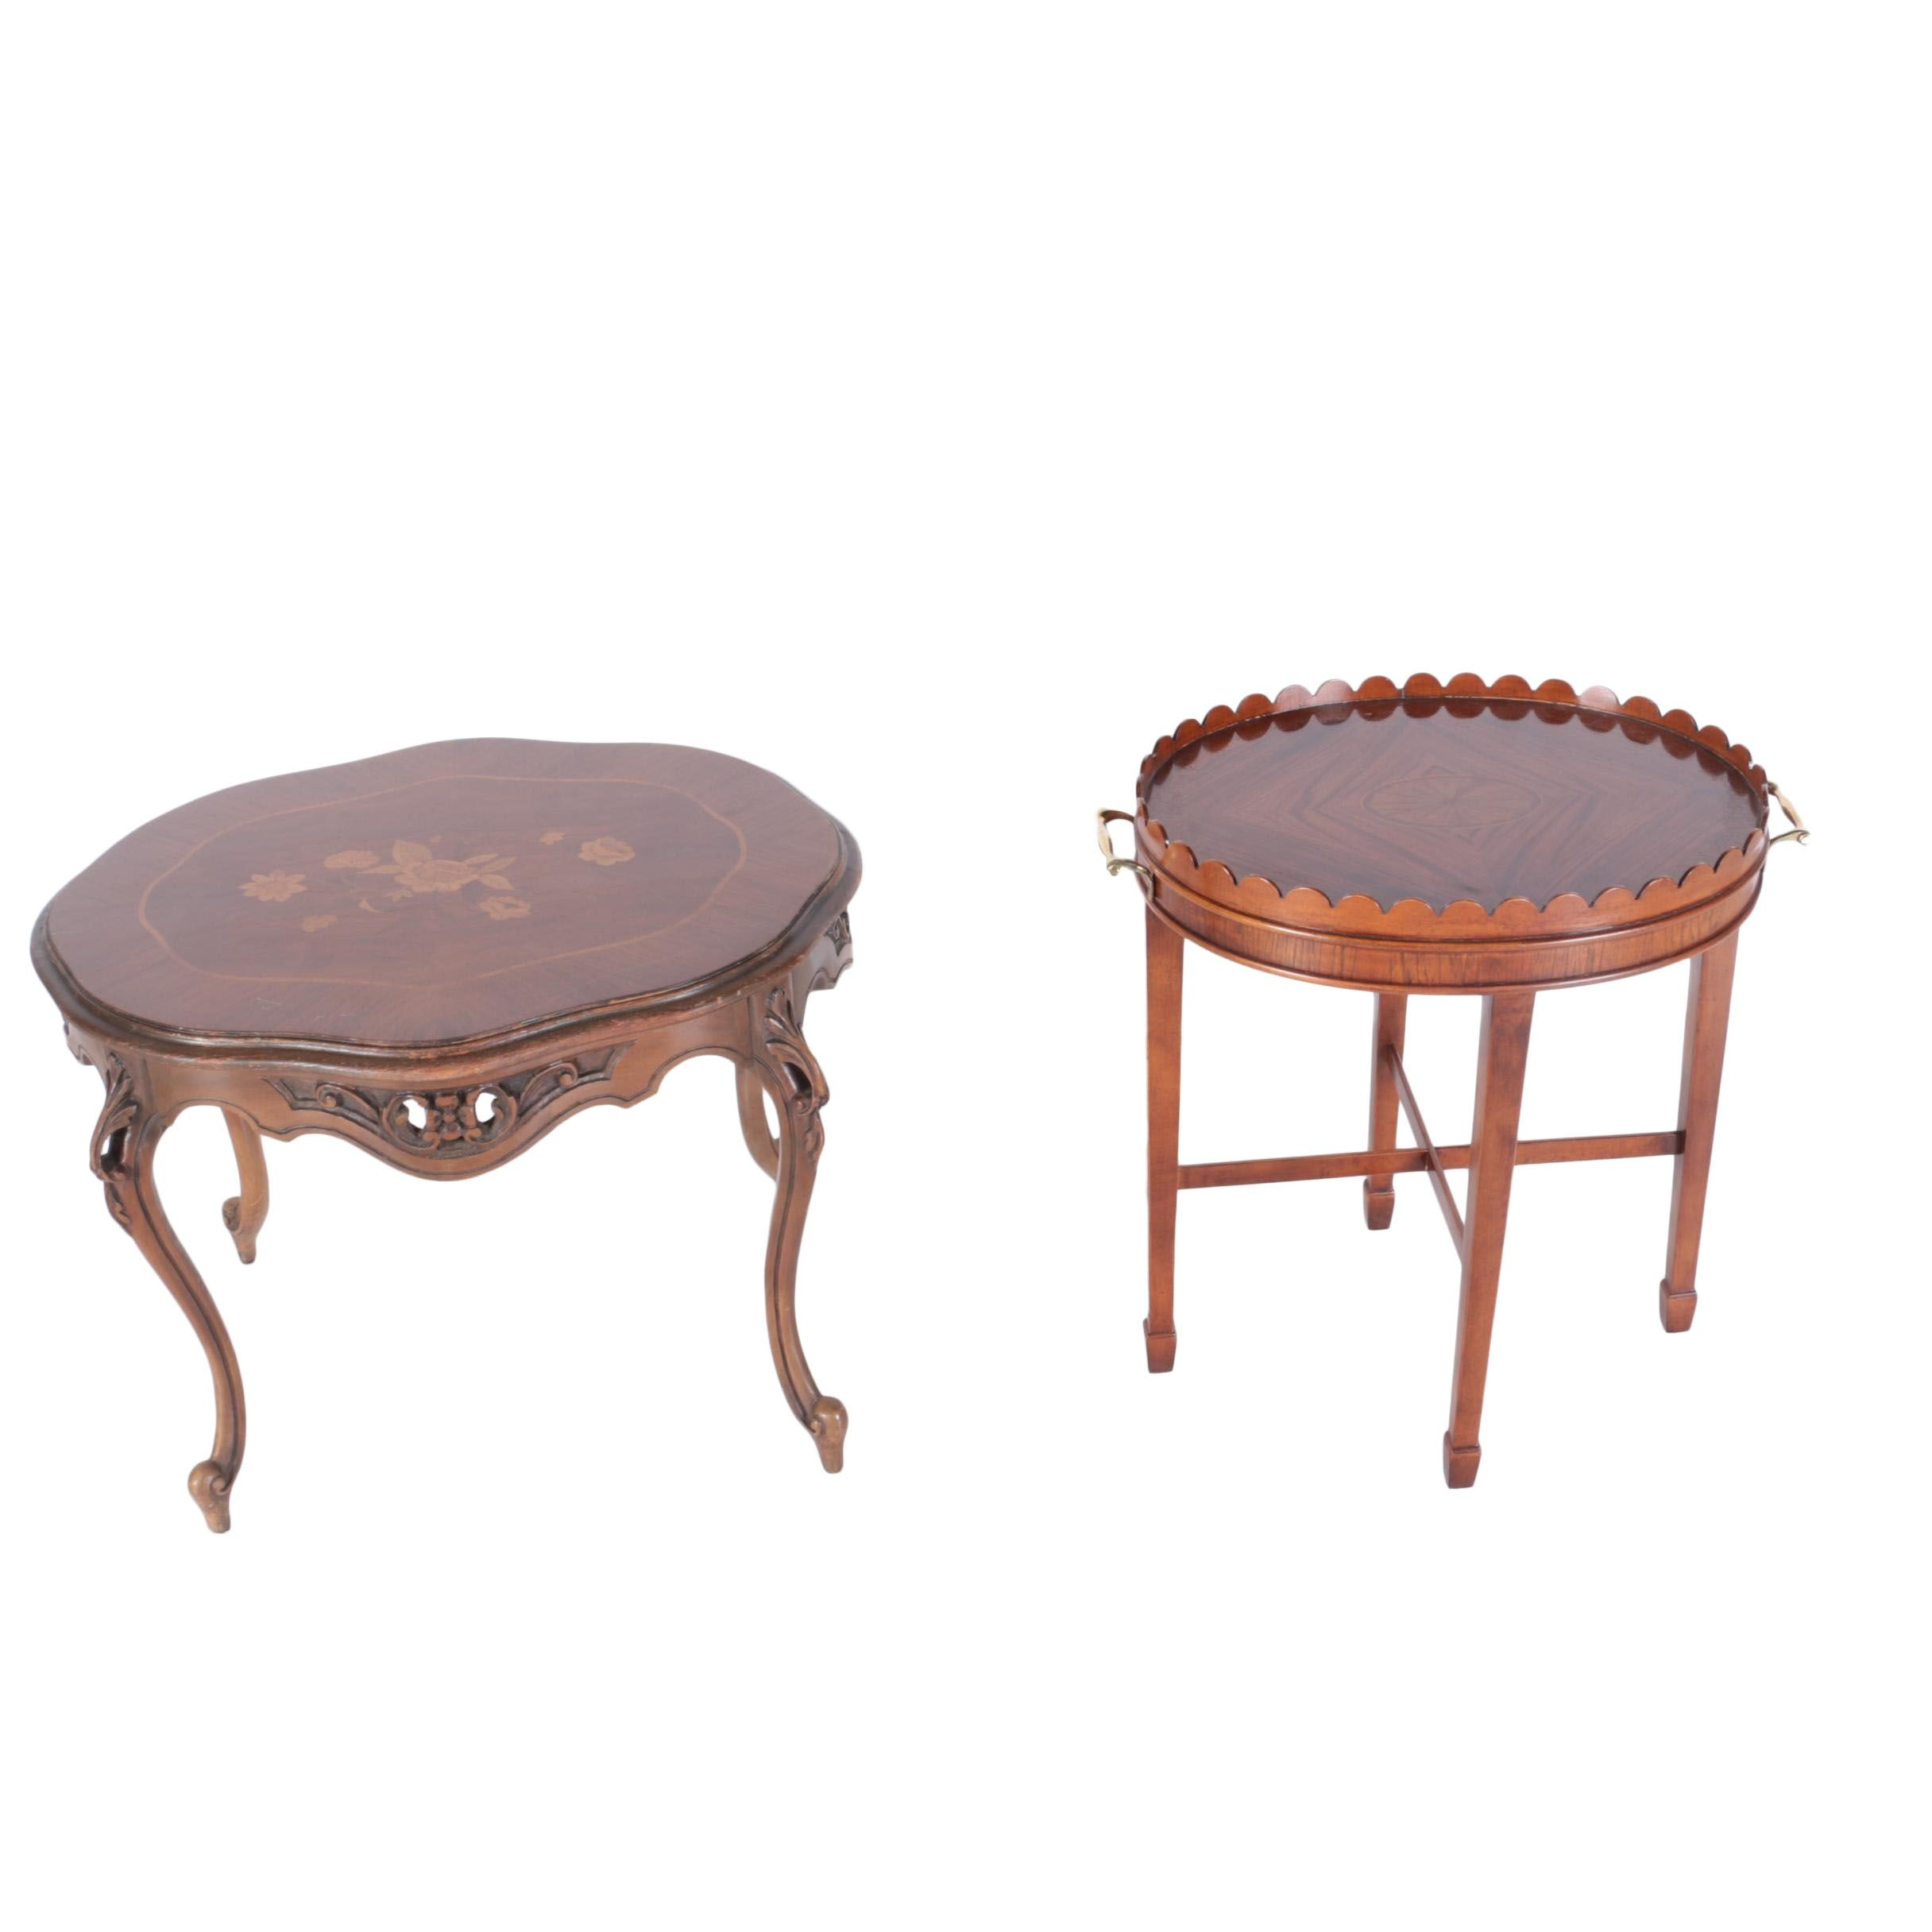 Louis XV Style Side Table and Federal Style Side Table